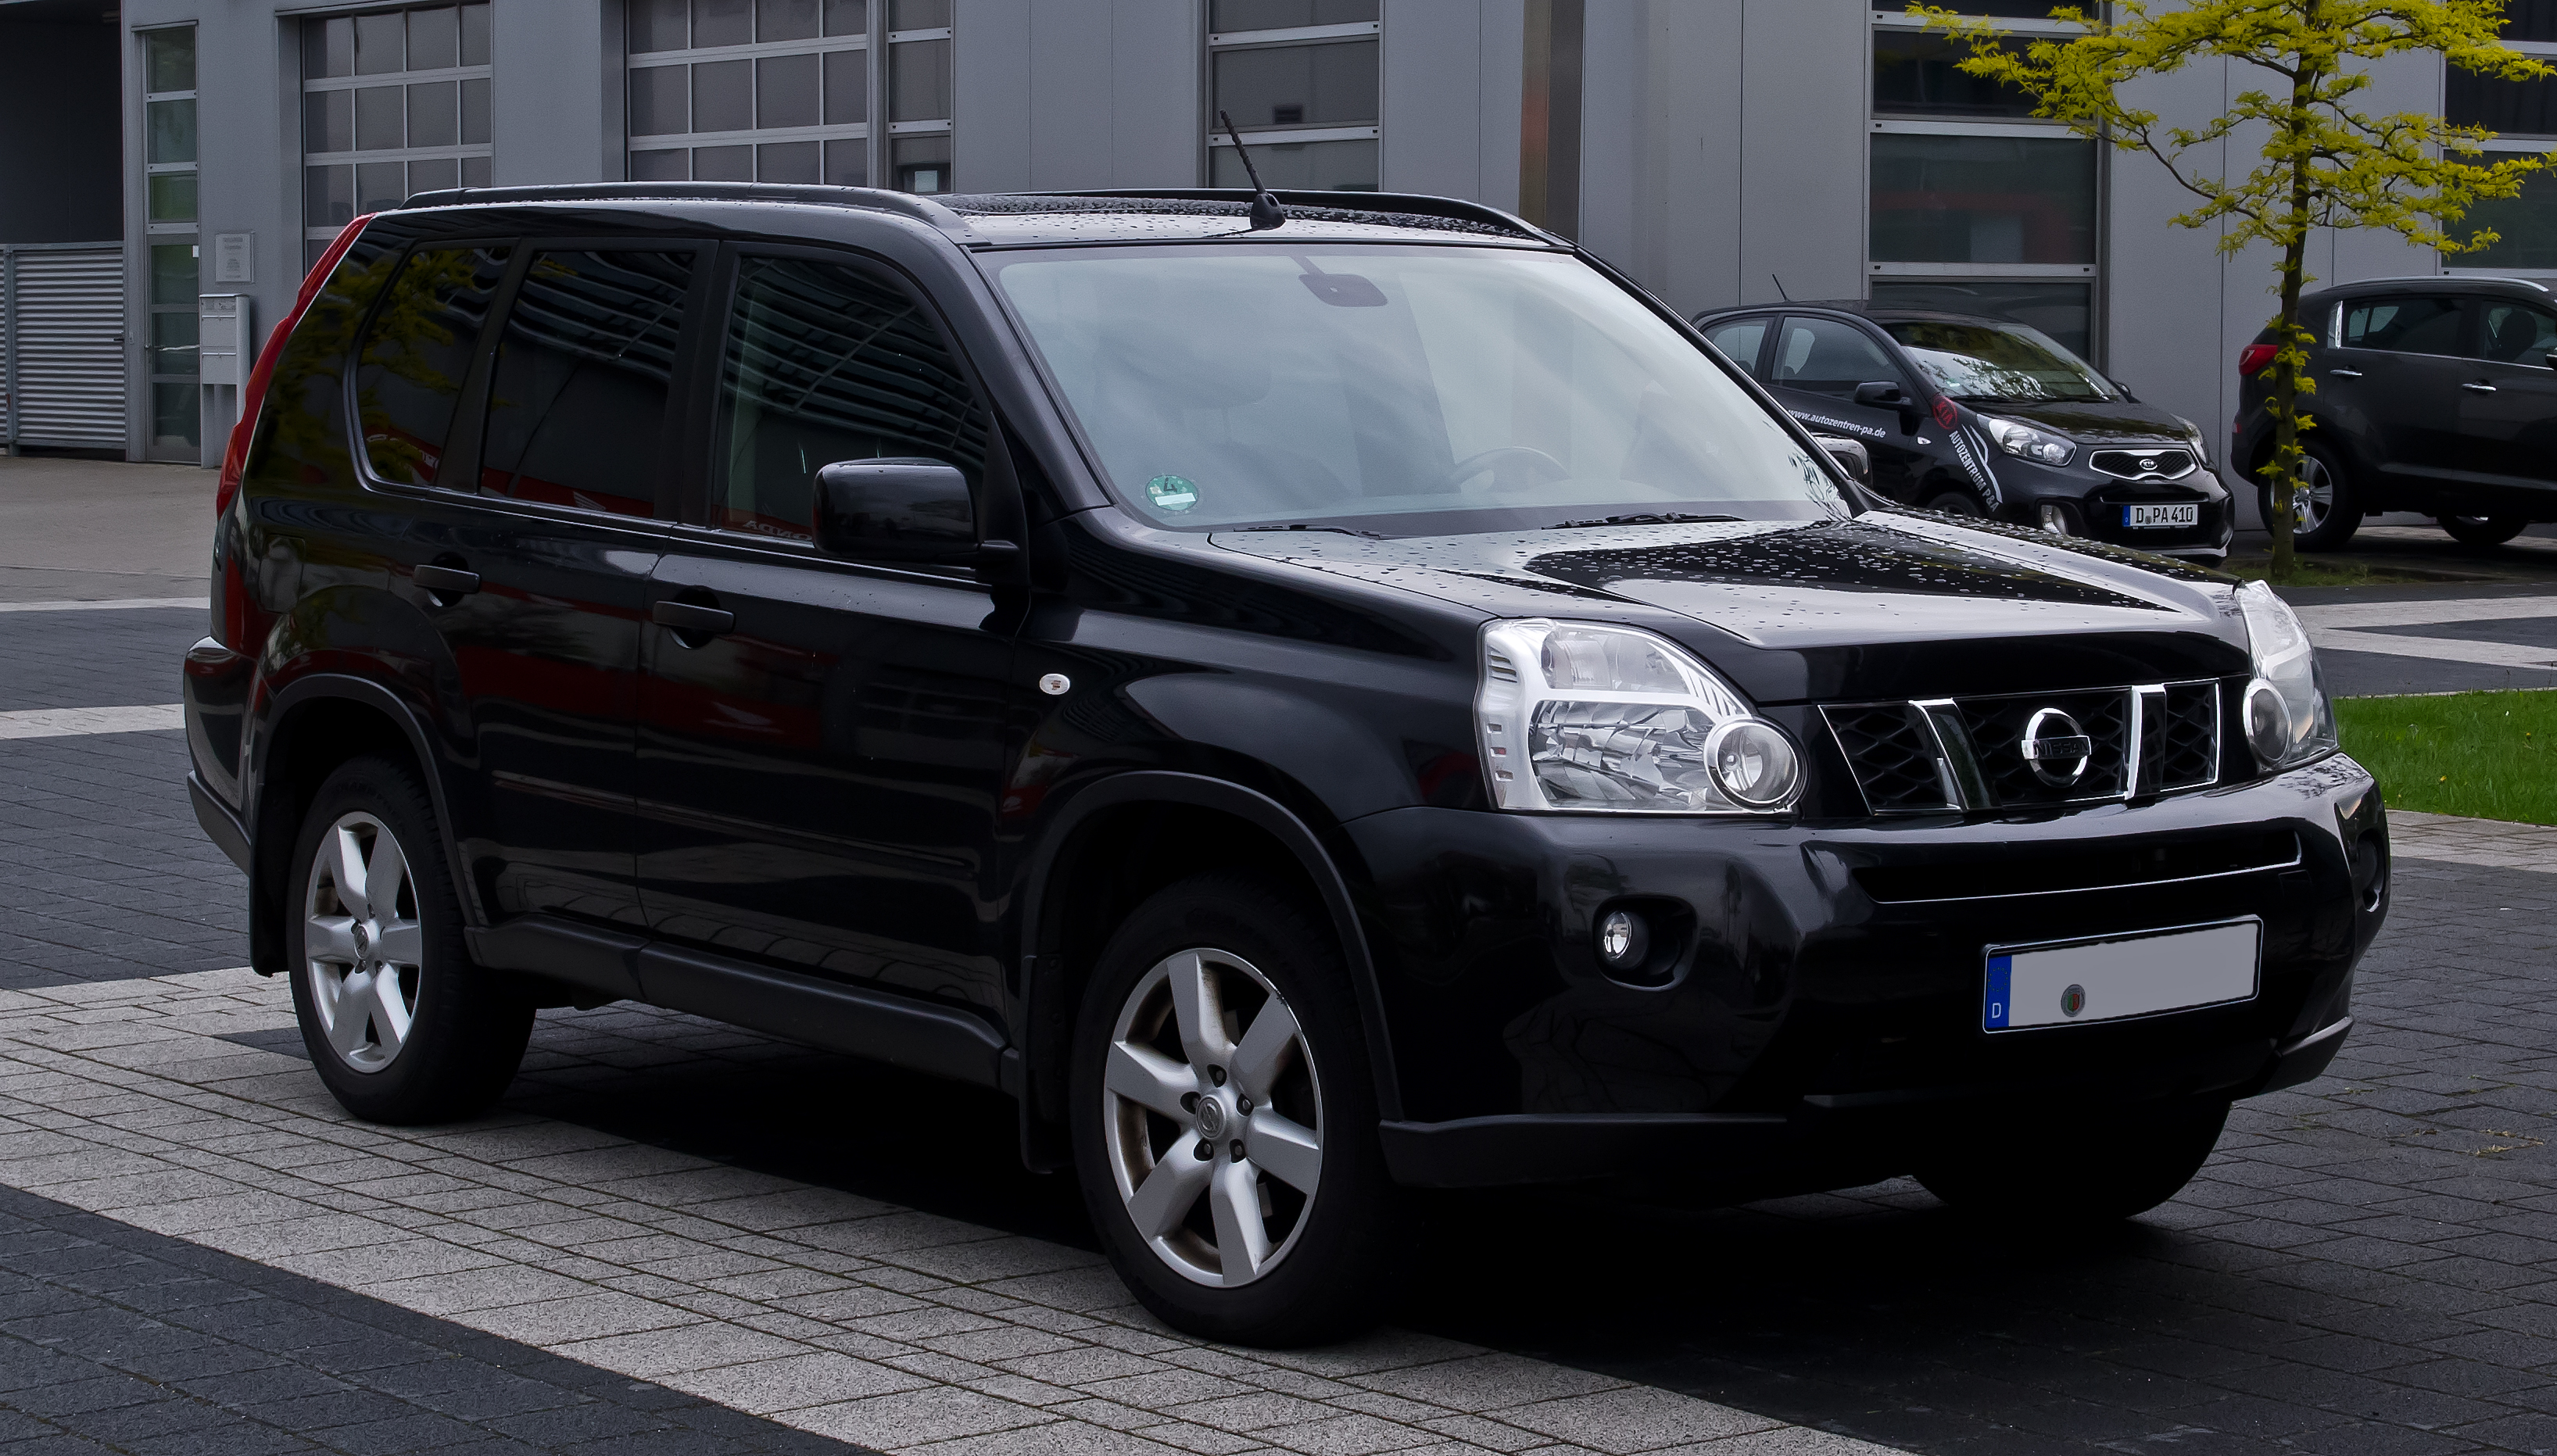 nissan x-trail images #5